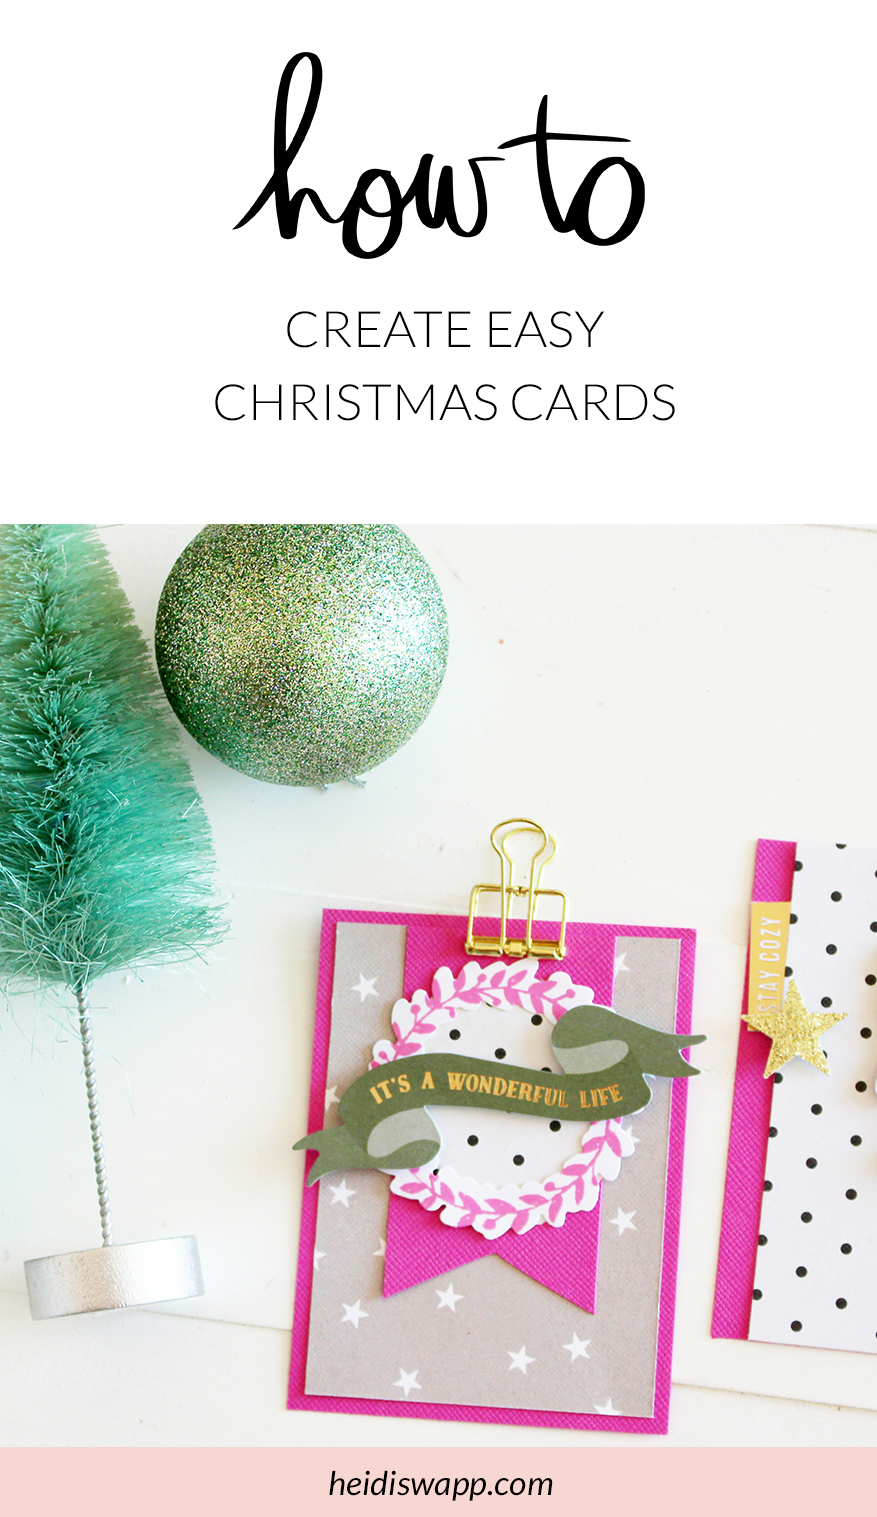 Create DIY Christmas cards with this FREE card tutorial by media team member Kim Jeffress. She walks through 3 simple card ideas using my Winter Wonderland stamp and die set. Crafting never was easier!